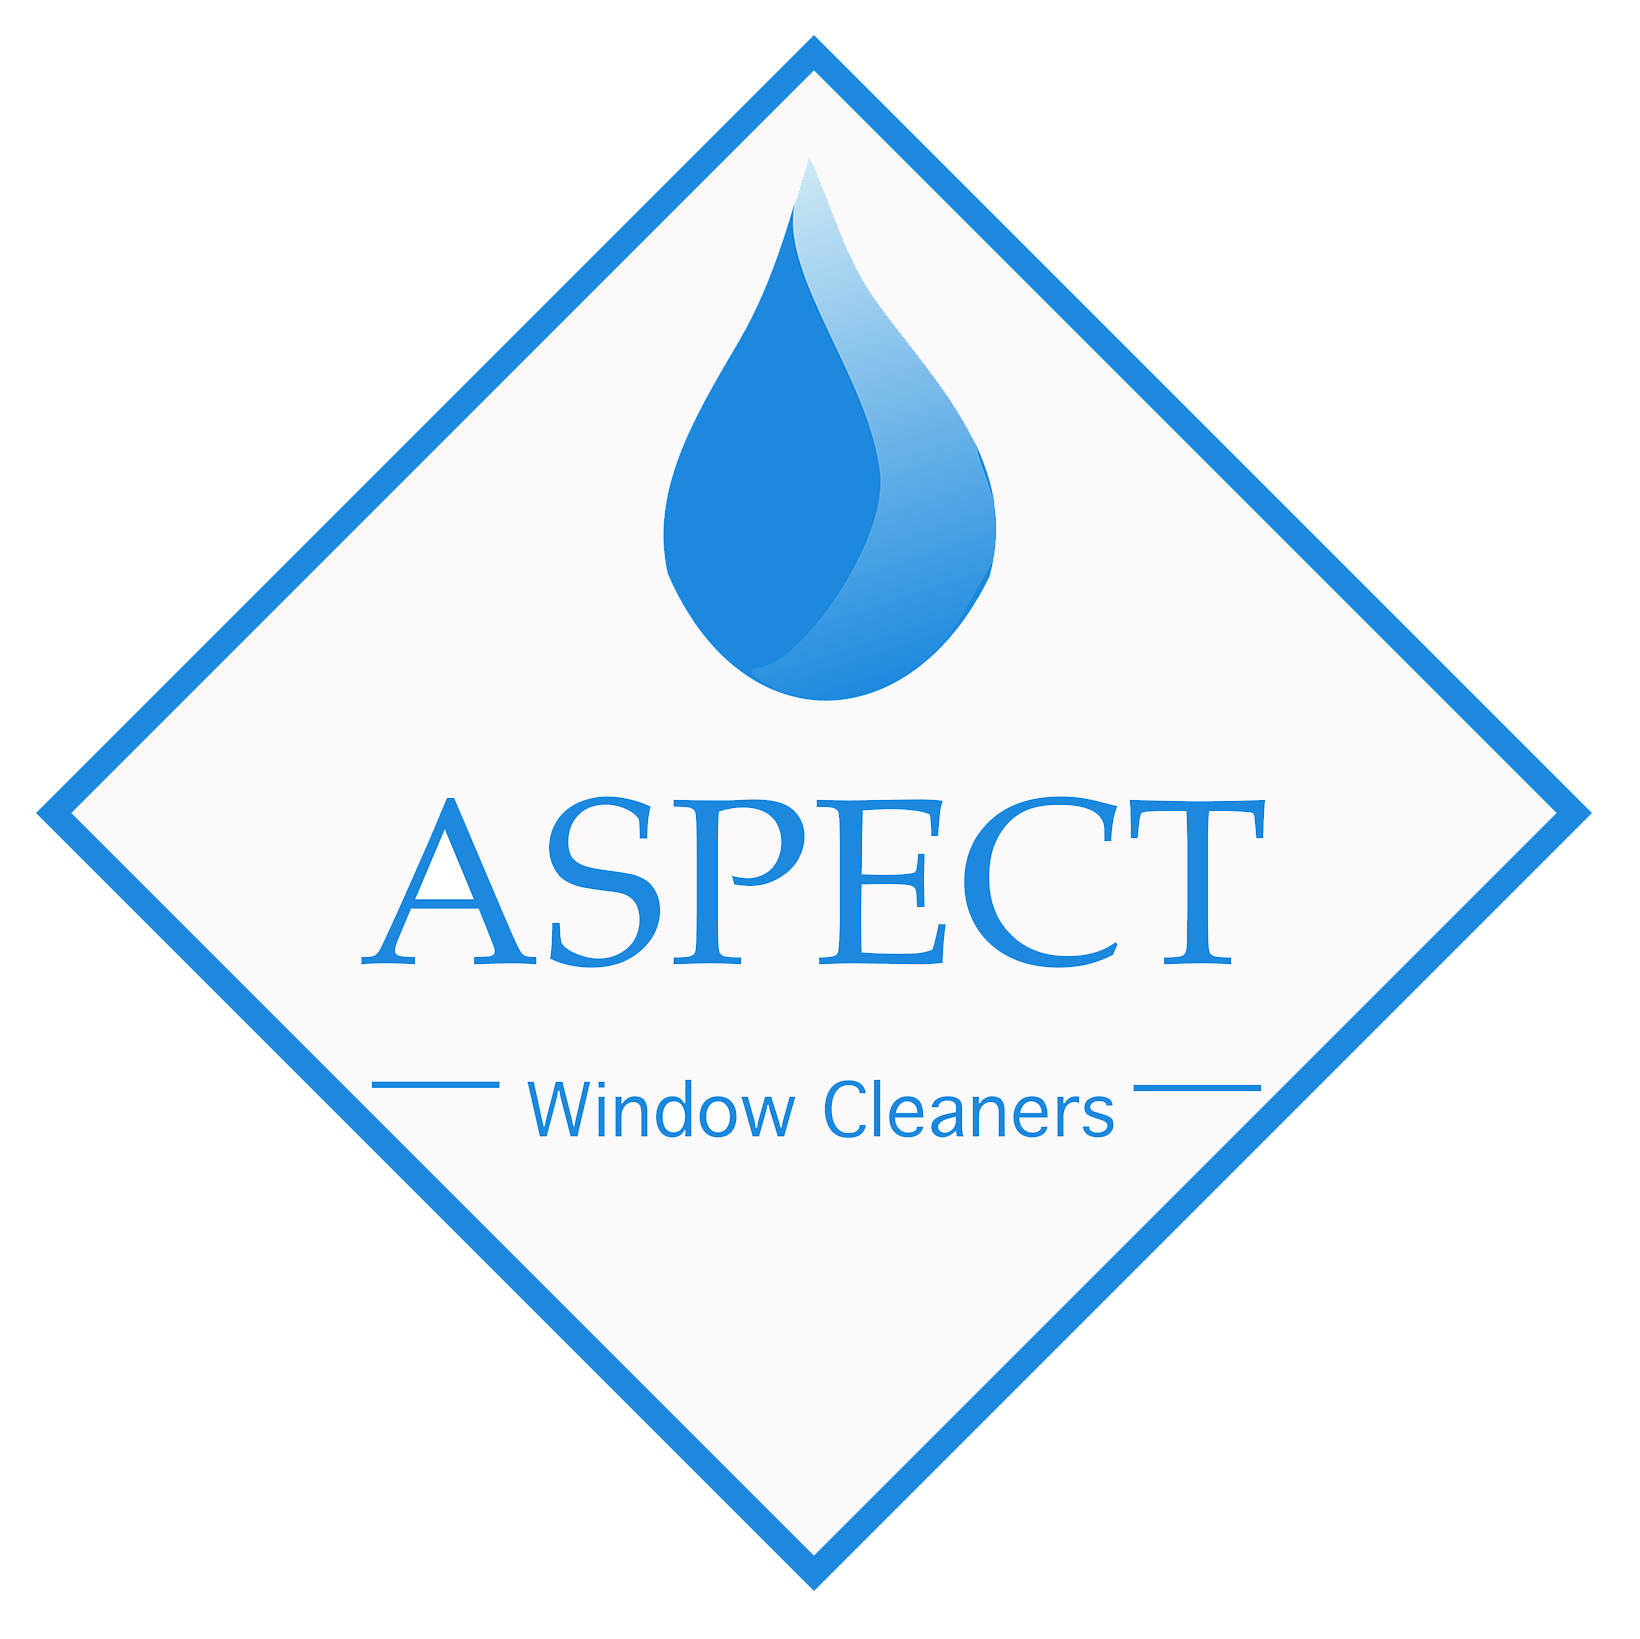 Aspect Window Cleaners